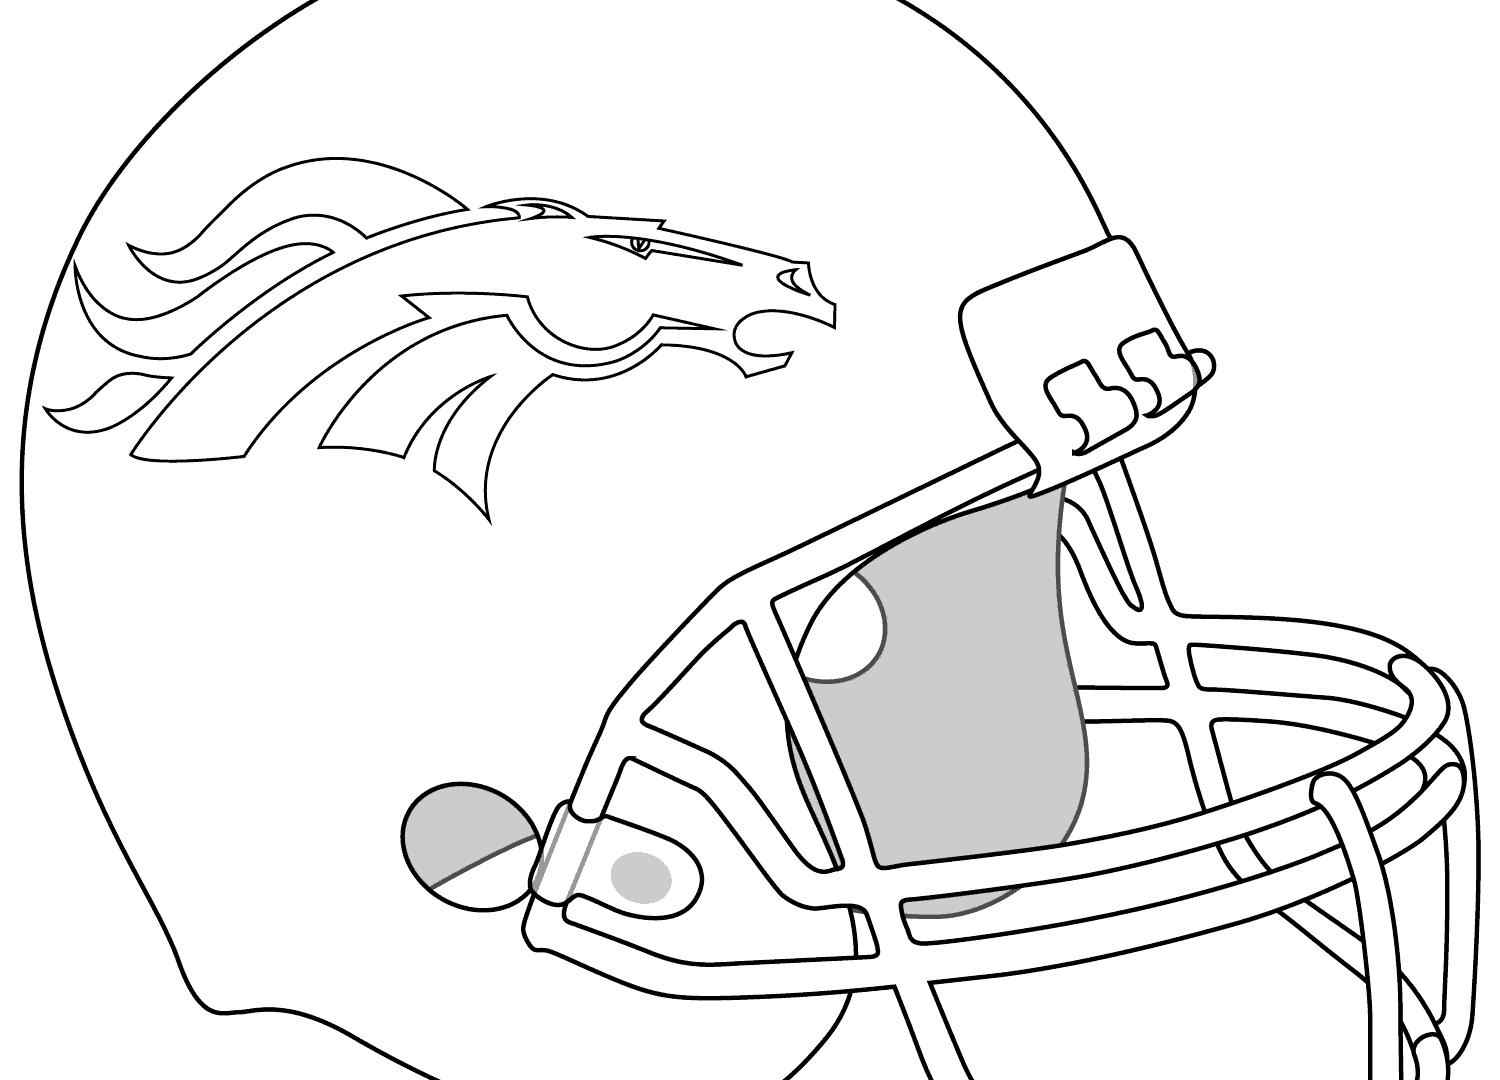 1500x1080 Green Bay Packers Logo Coloring Page Free Printable And Helmet